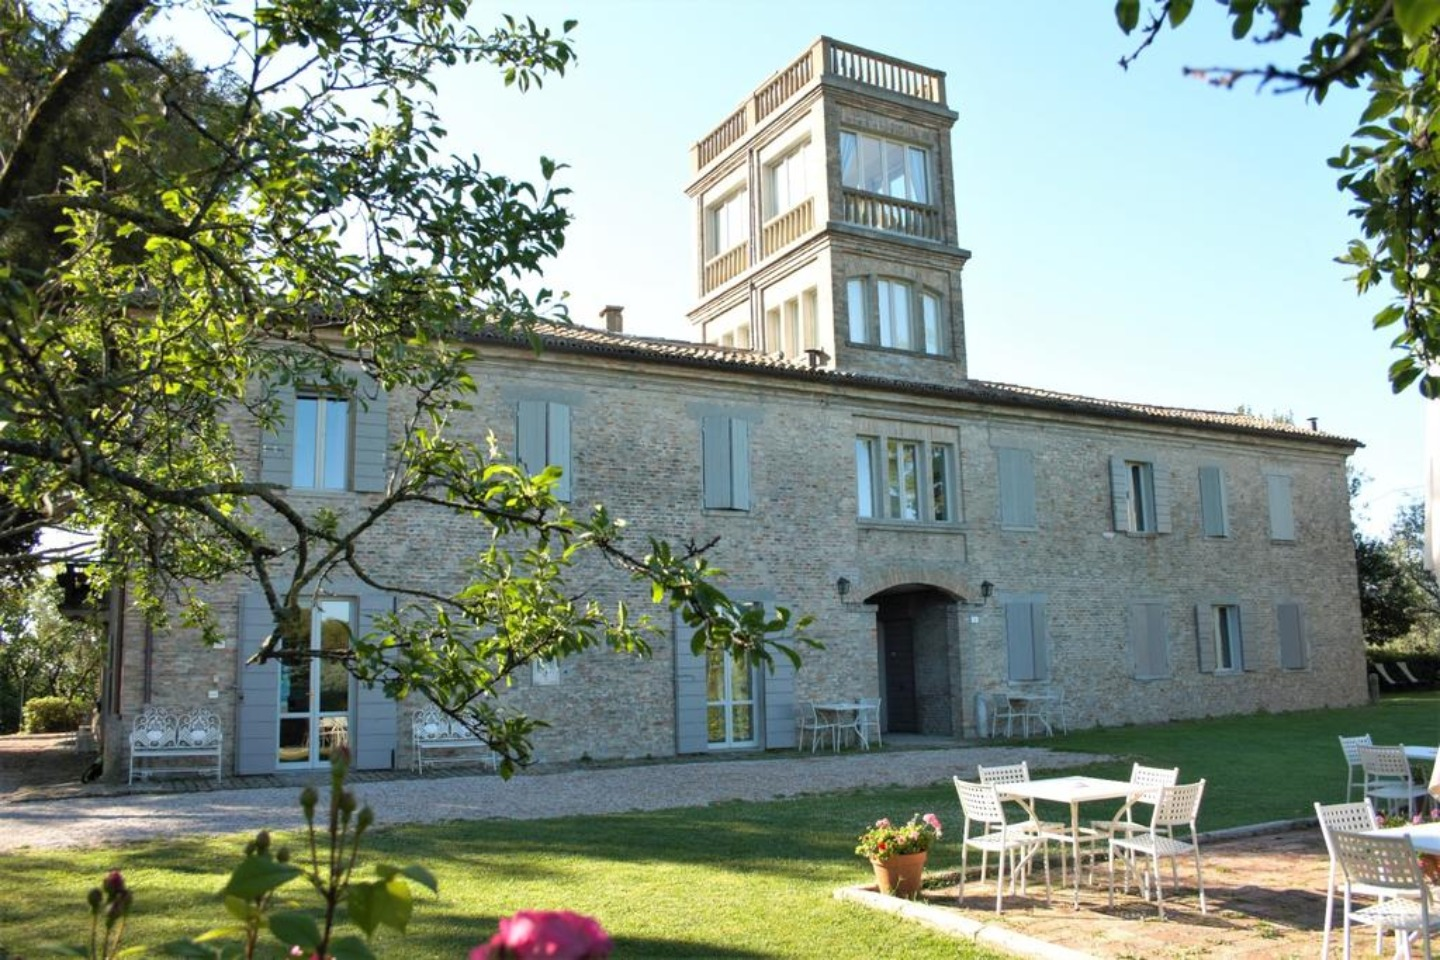 A large brick building at Il Pignocco Country House.